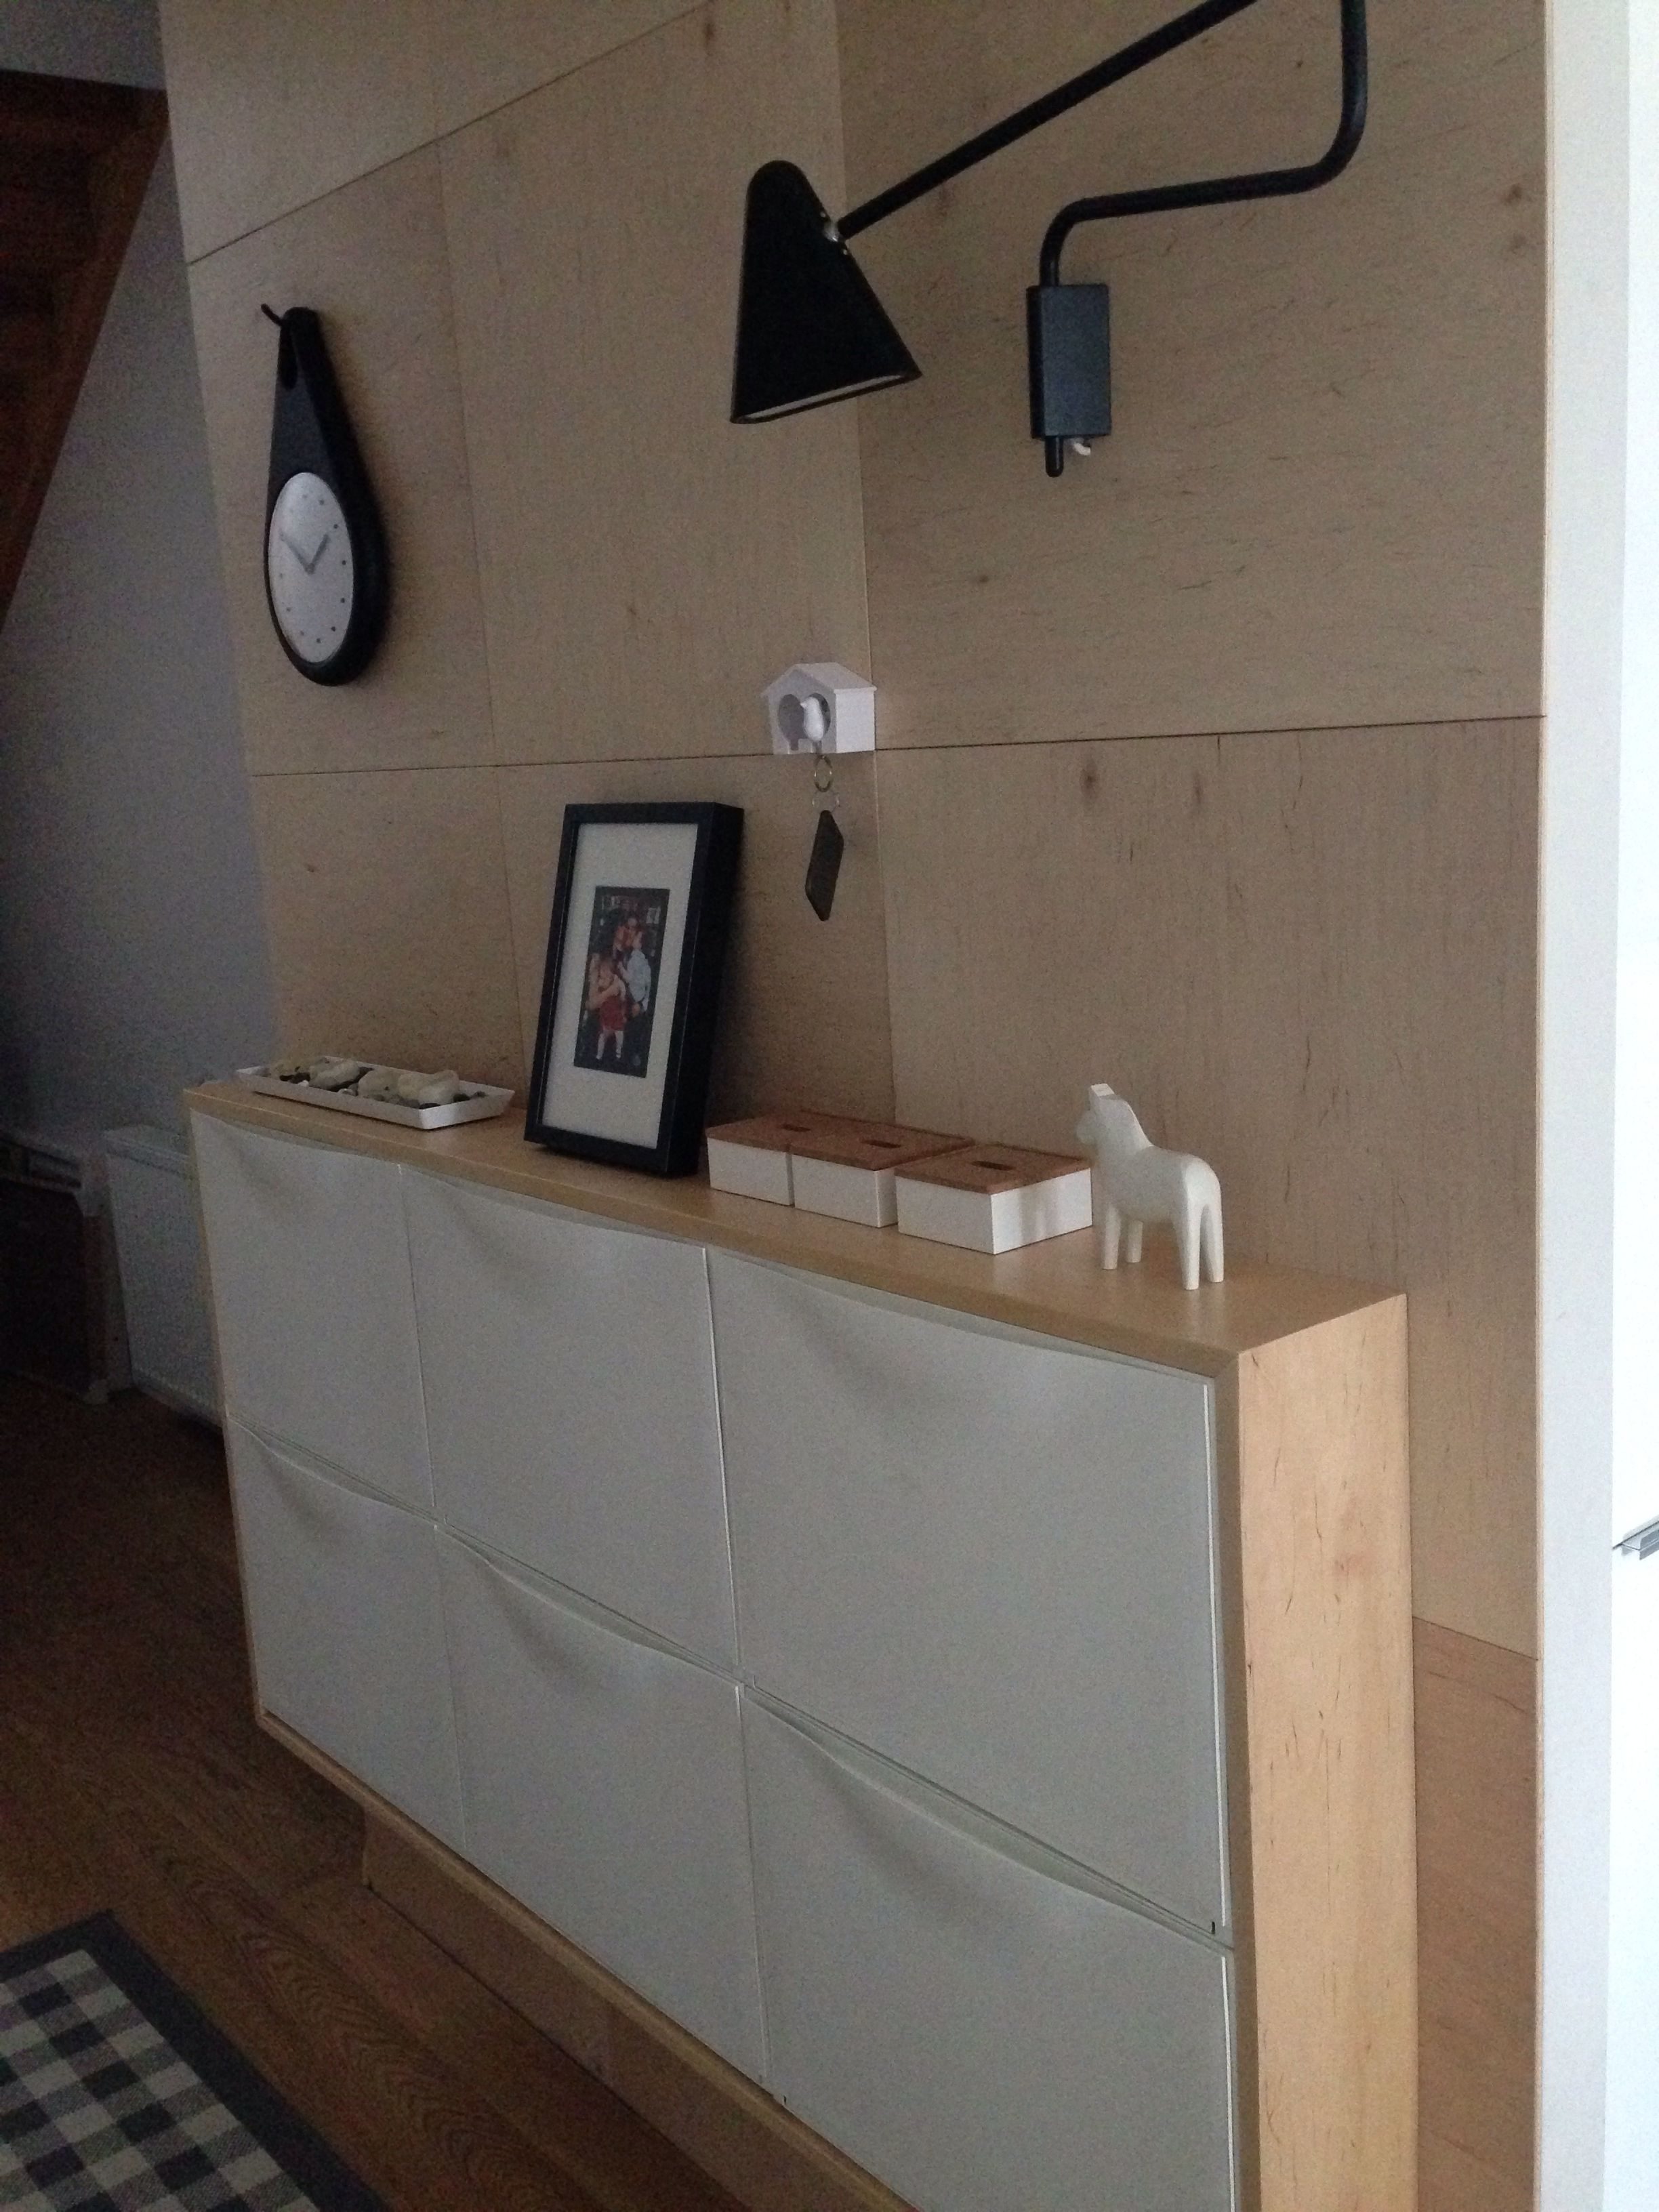 Ikea Schuhregal Trones.Plywood Wall And Ikea Trones Cabinets In My Hallway Vivir